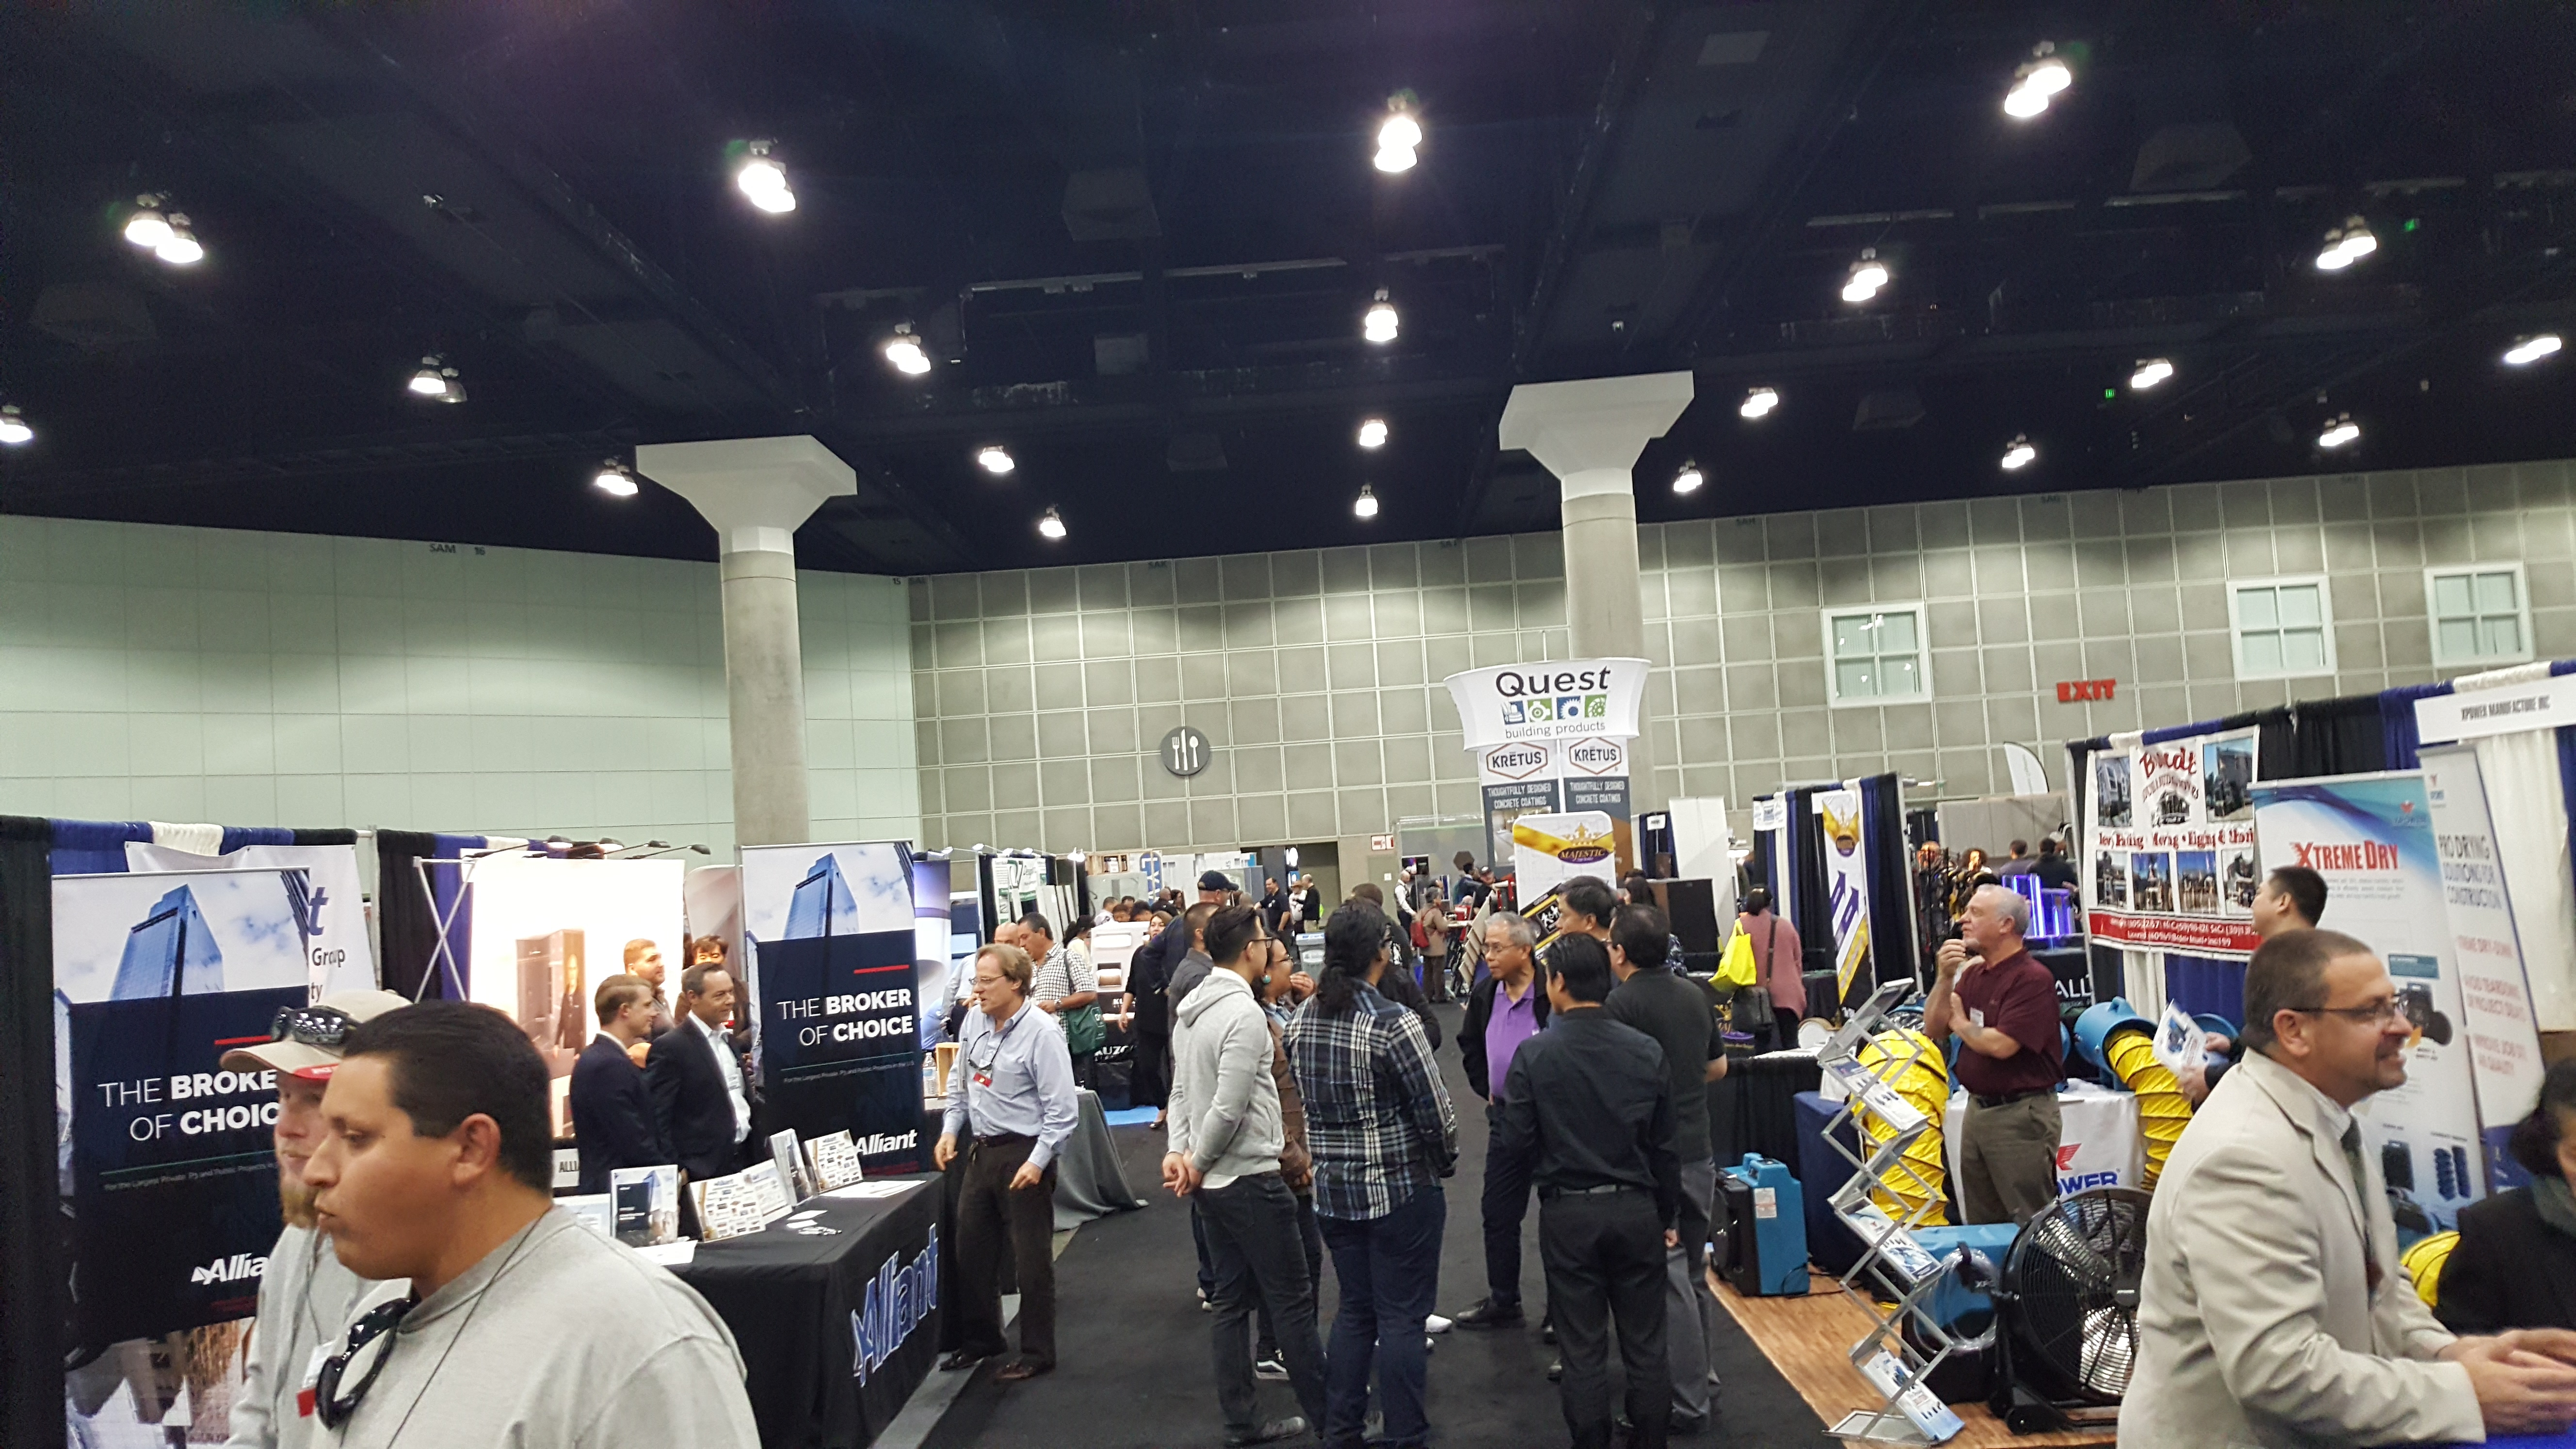 build-expo-exhibitor-hall-crowd